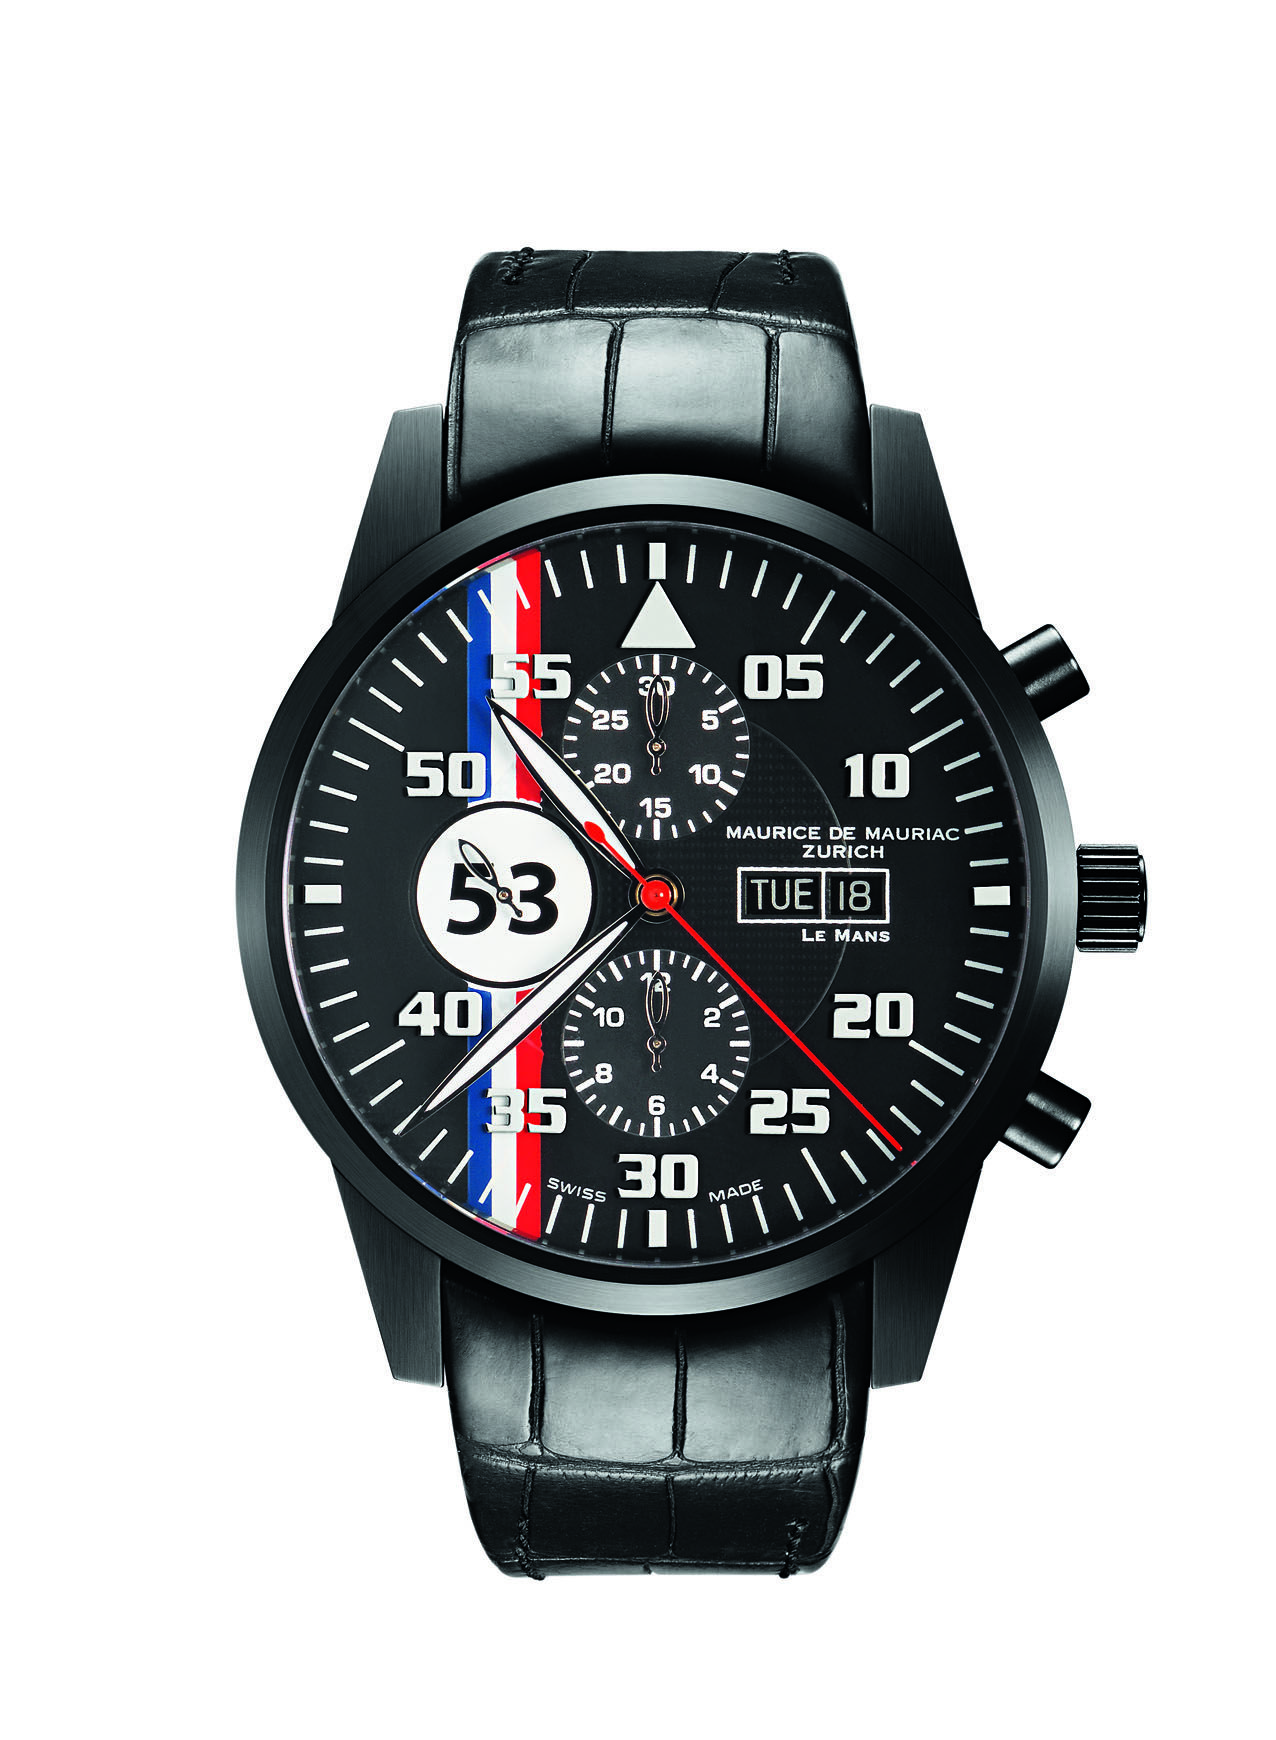 Upscale Very Watches Watches Men Wholesale Maurice De Mauriac Official Site Watches Made By Zurich Le Mans Racing furniture Cool Unique Watches